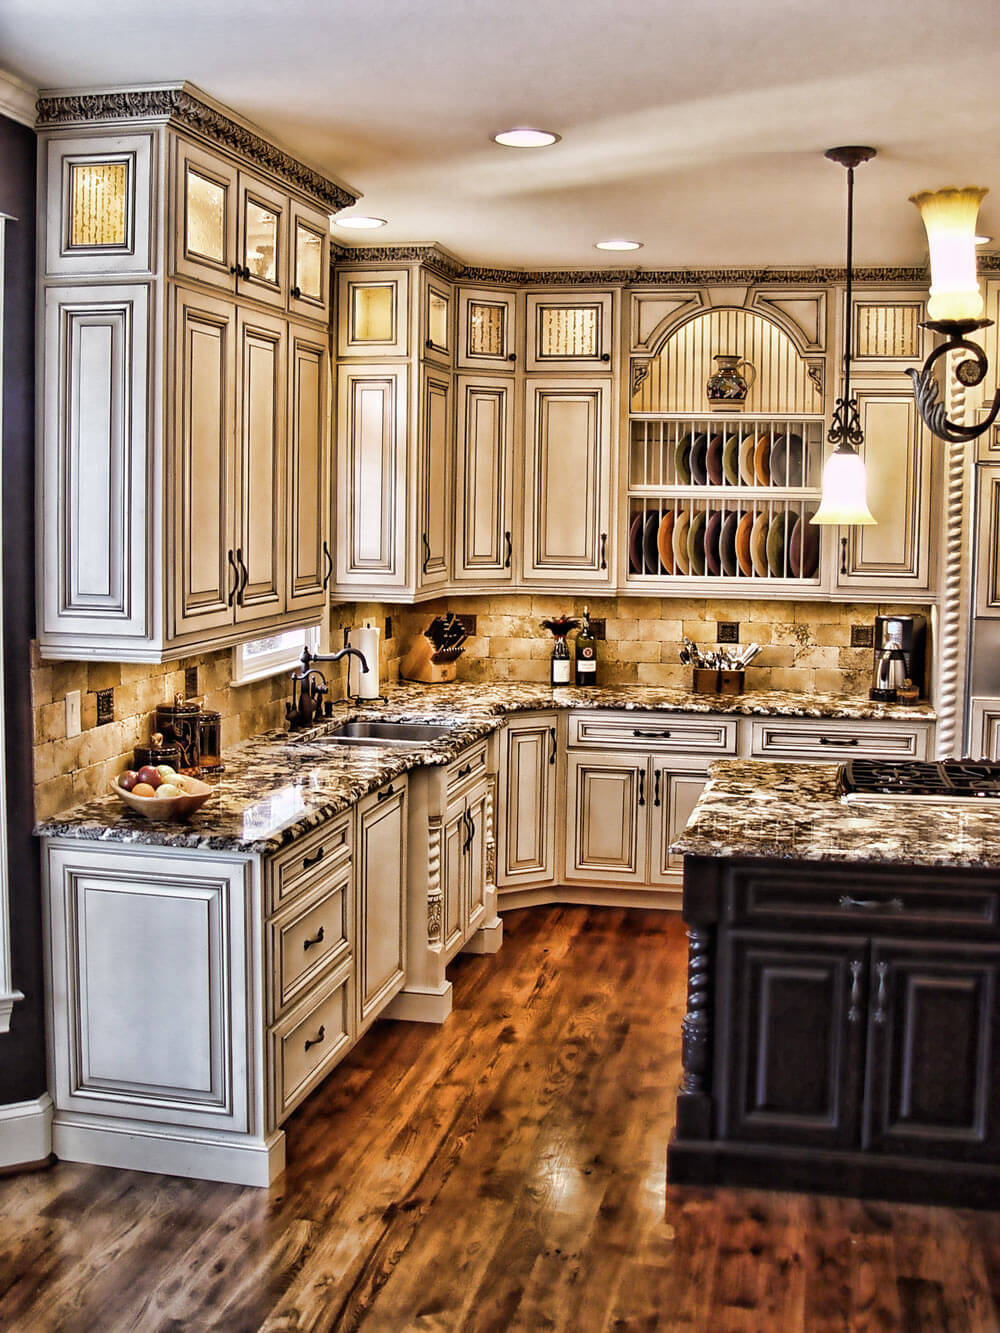 Rustic Kitchen Styles rustic kitchen cabinet designs - kitchen design ideas